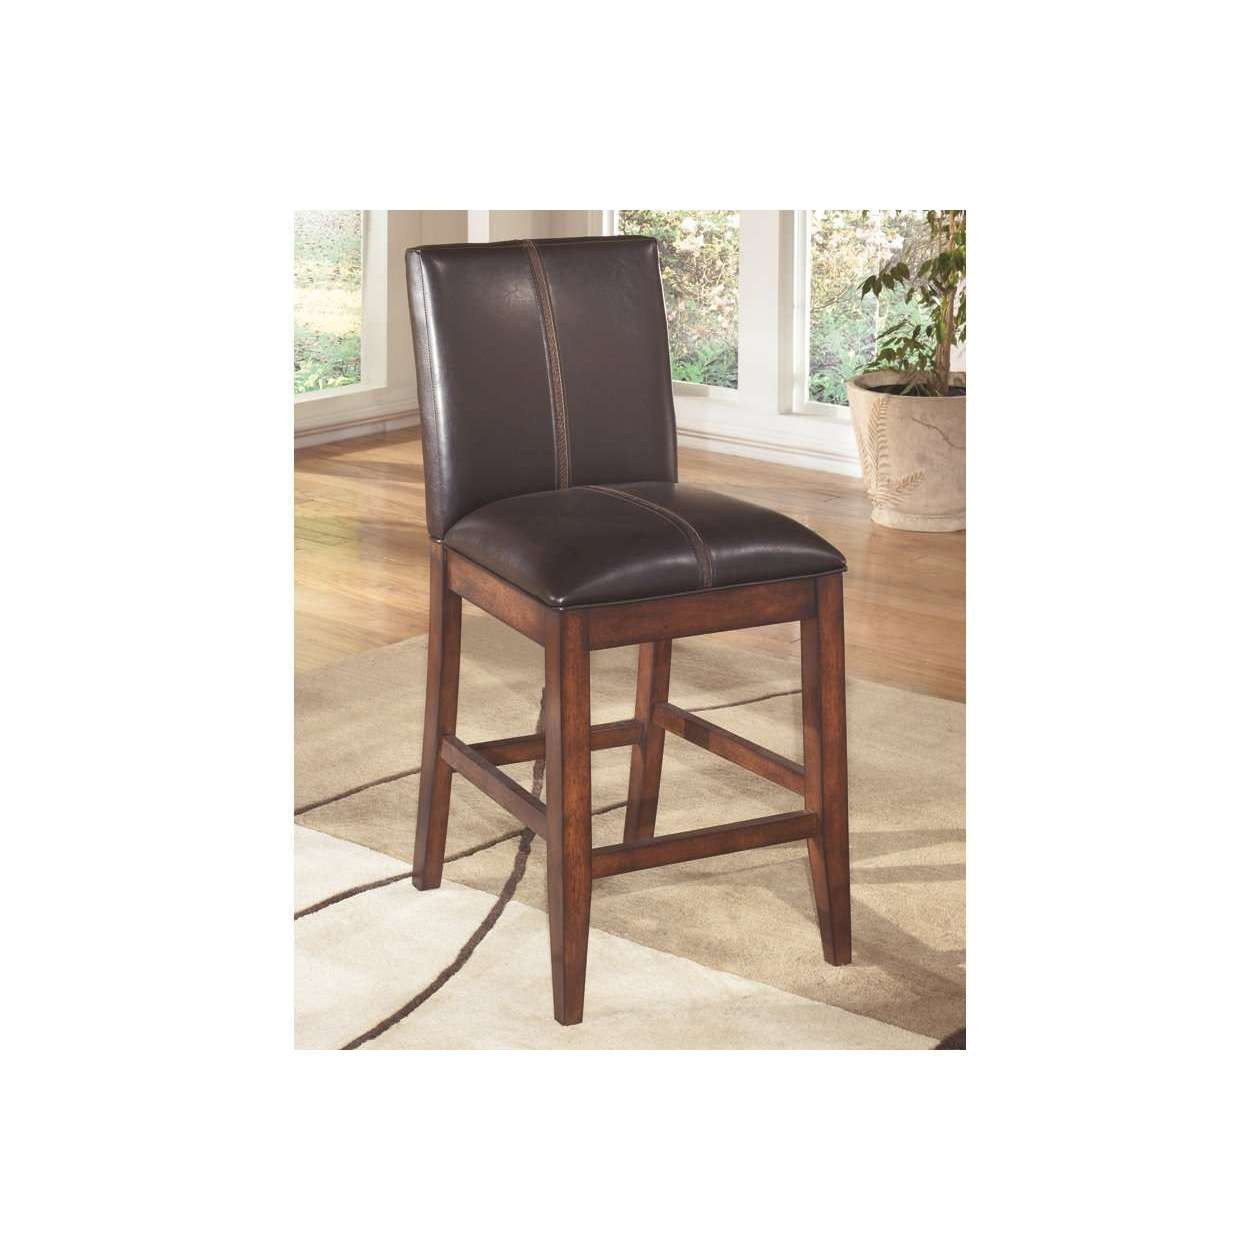 Astounding Larchmont Counter Height Bar Stool Ncnpc Chair Design For Home Ncnpcorg